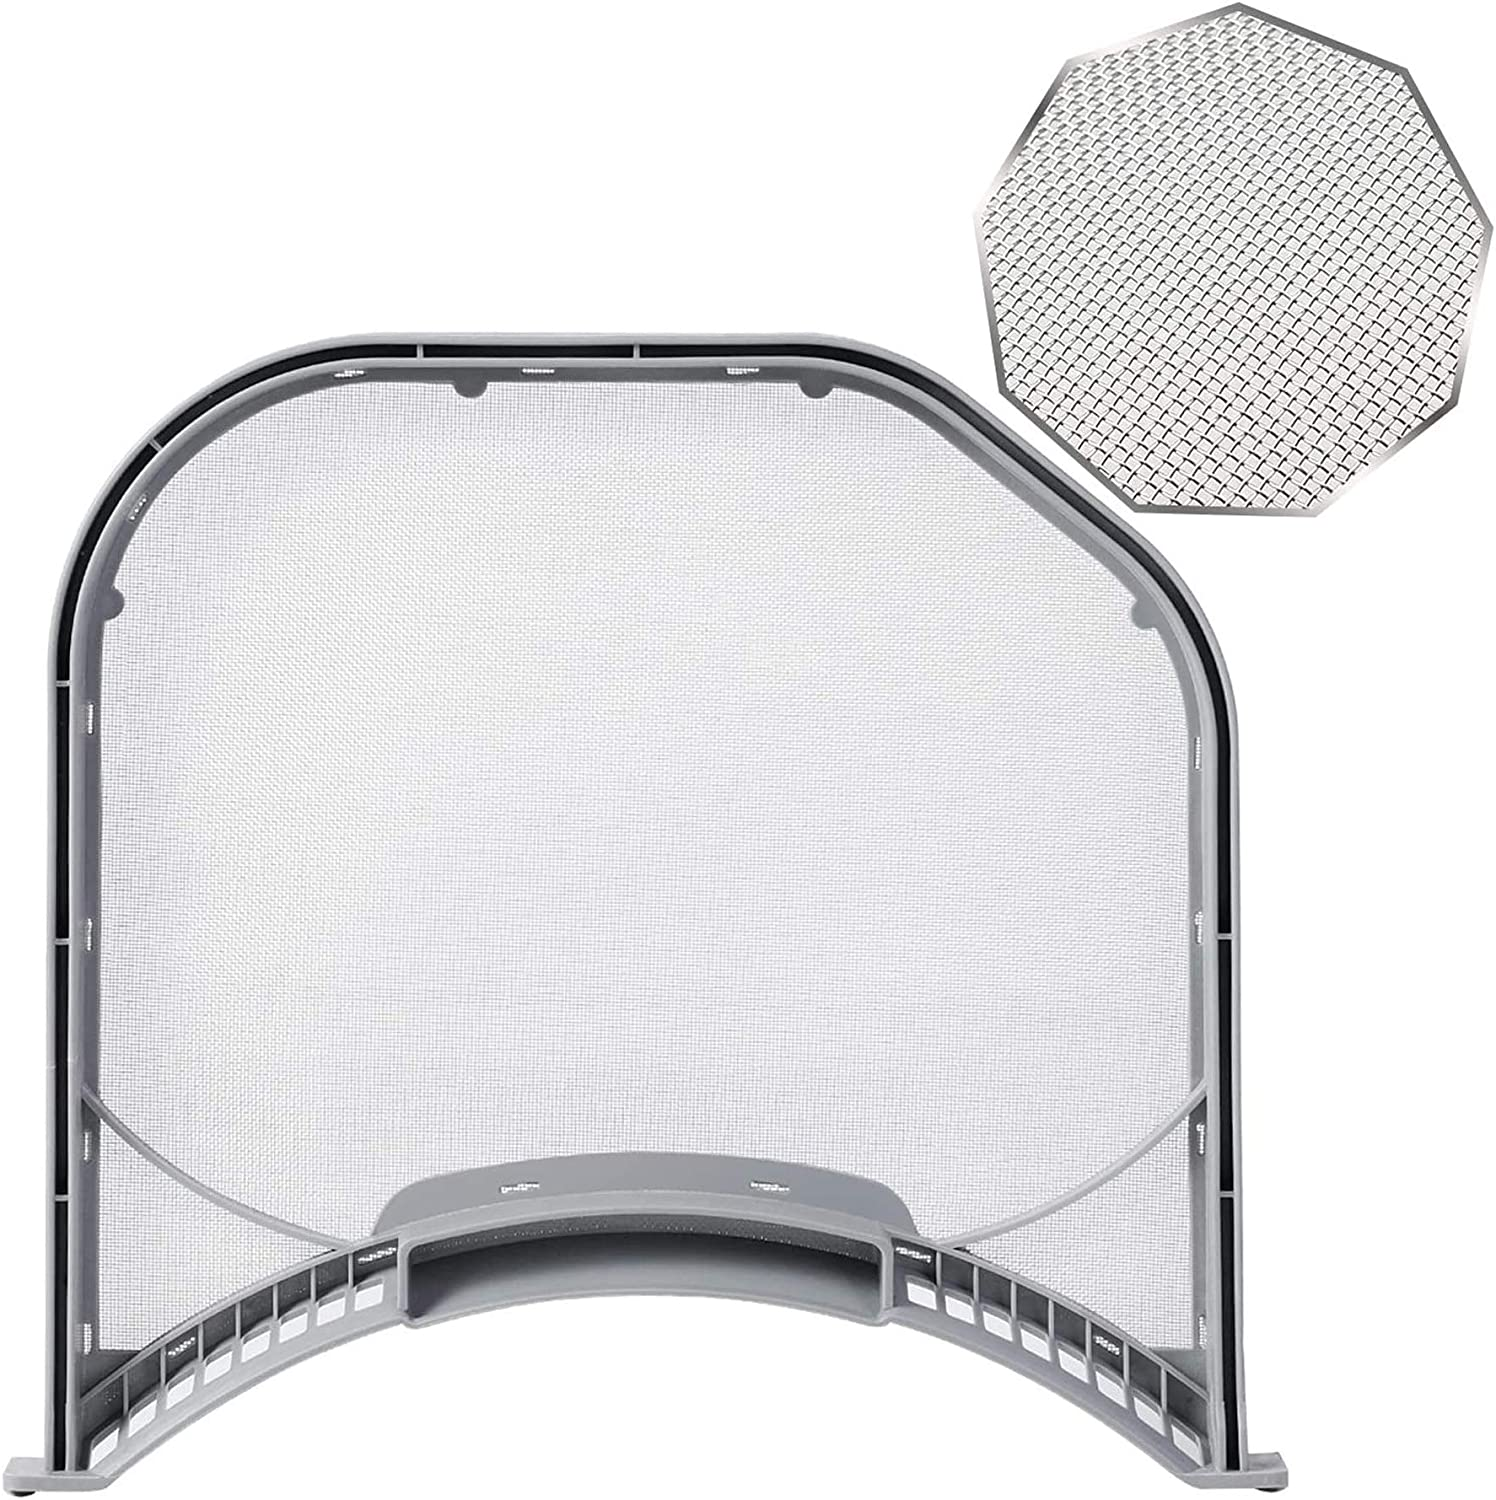 ADQ56656401 Store Dryer Lint Filter Screen LG Replacement For In stock Li